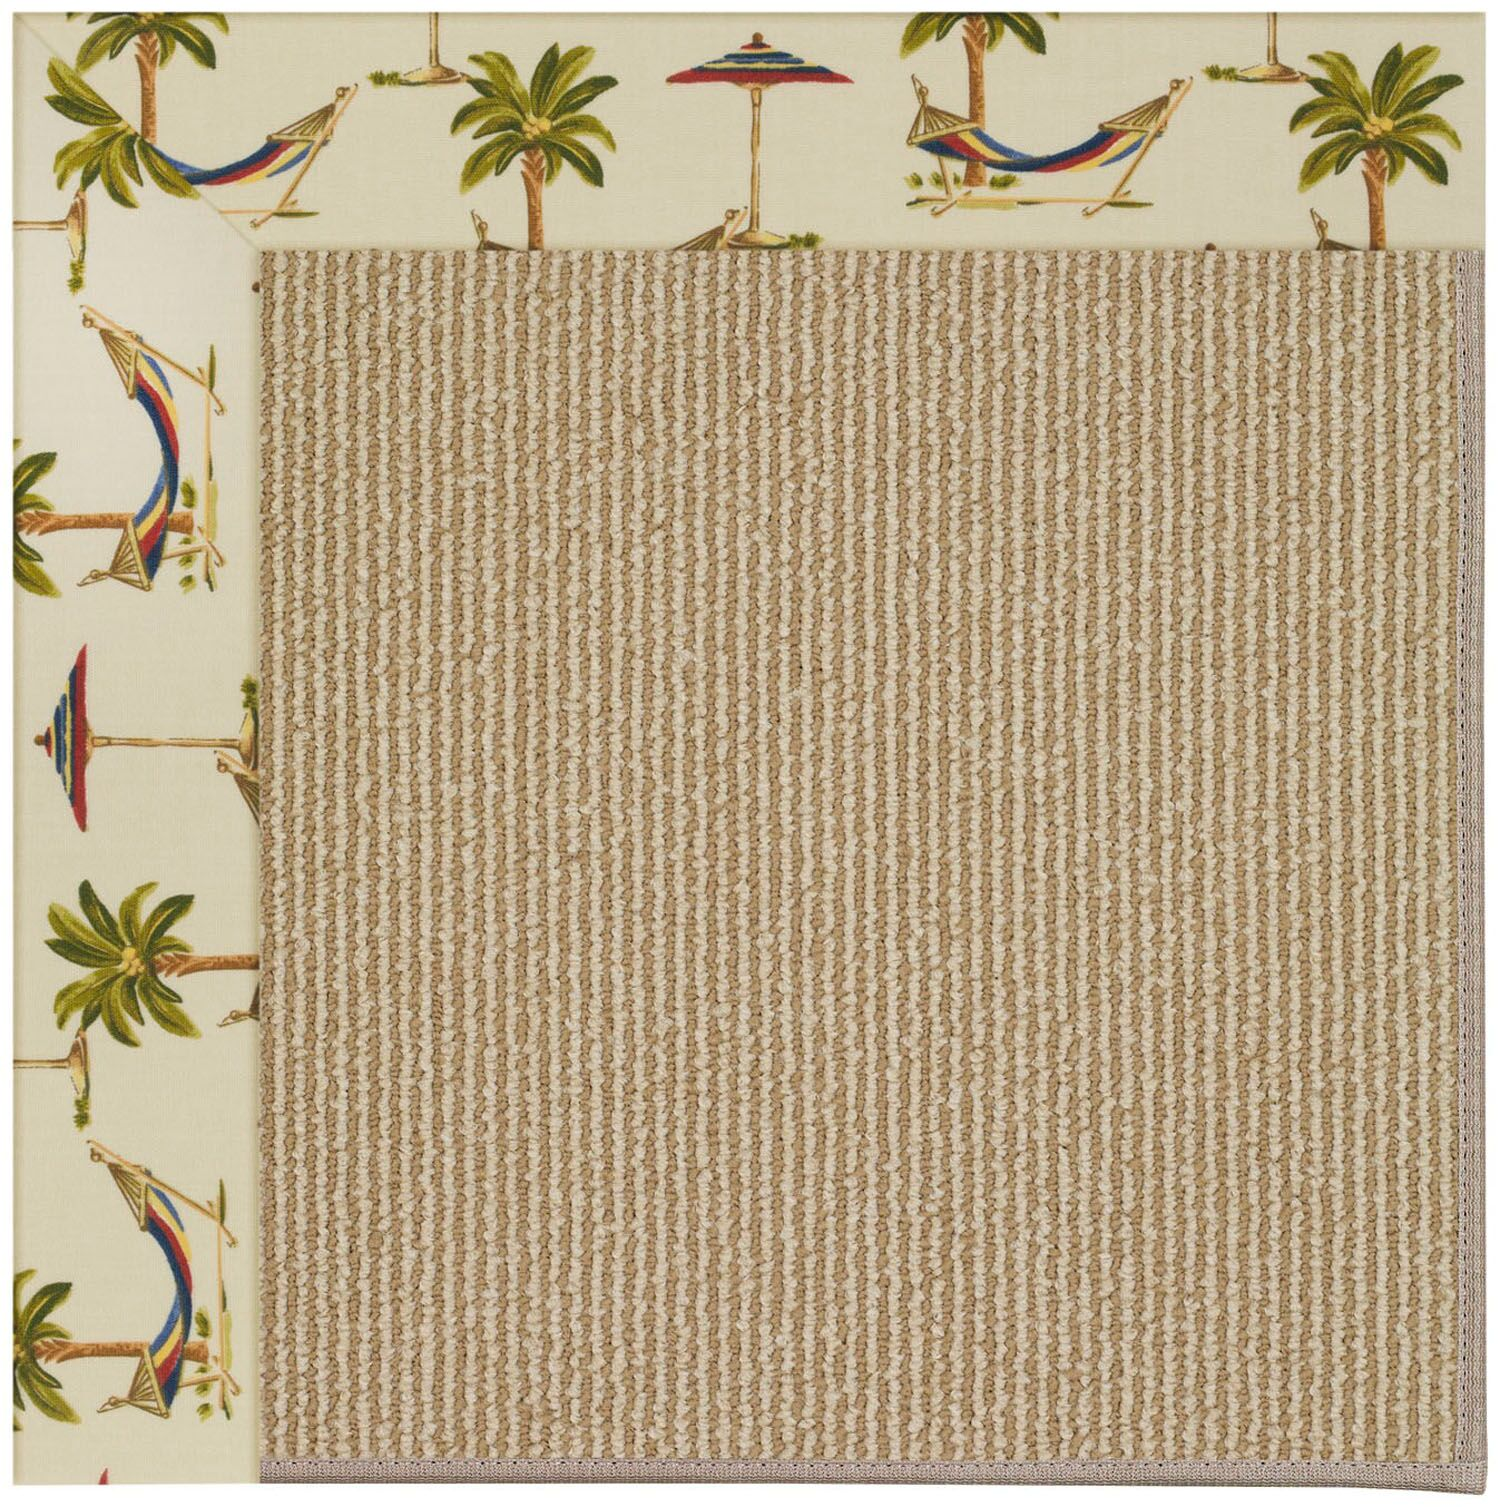 Lisle Machine Tufted Beige Indoor/Outdoor Area Rug Rug Size: Rectangle 9' x 12'